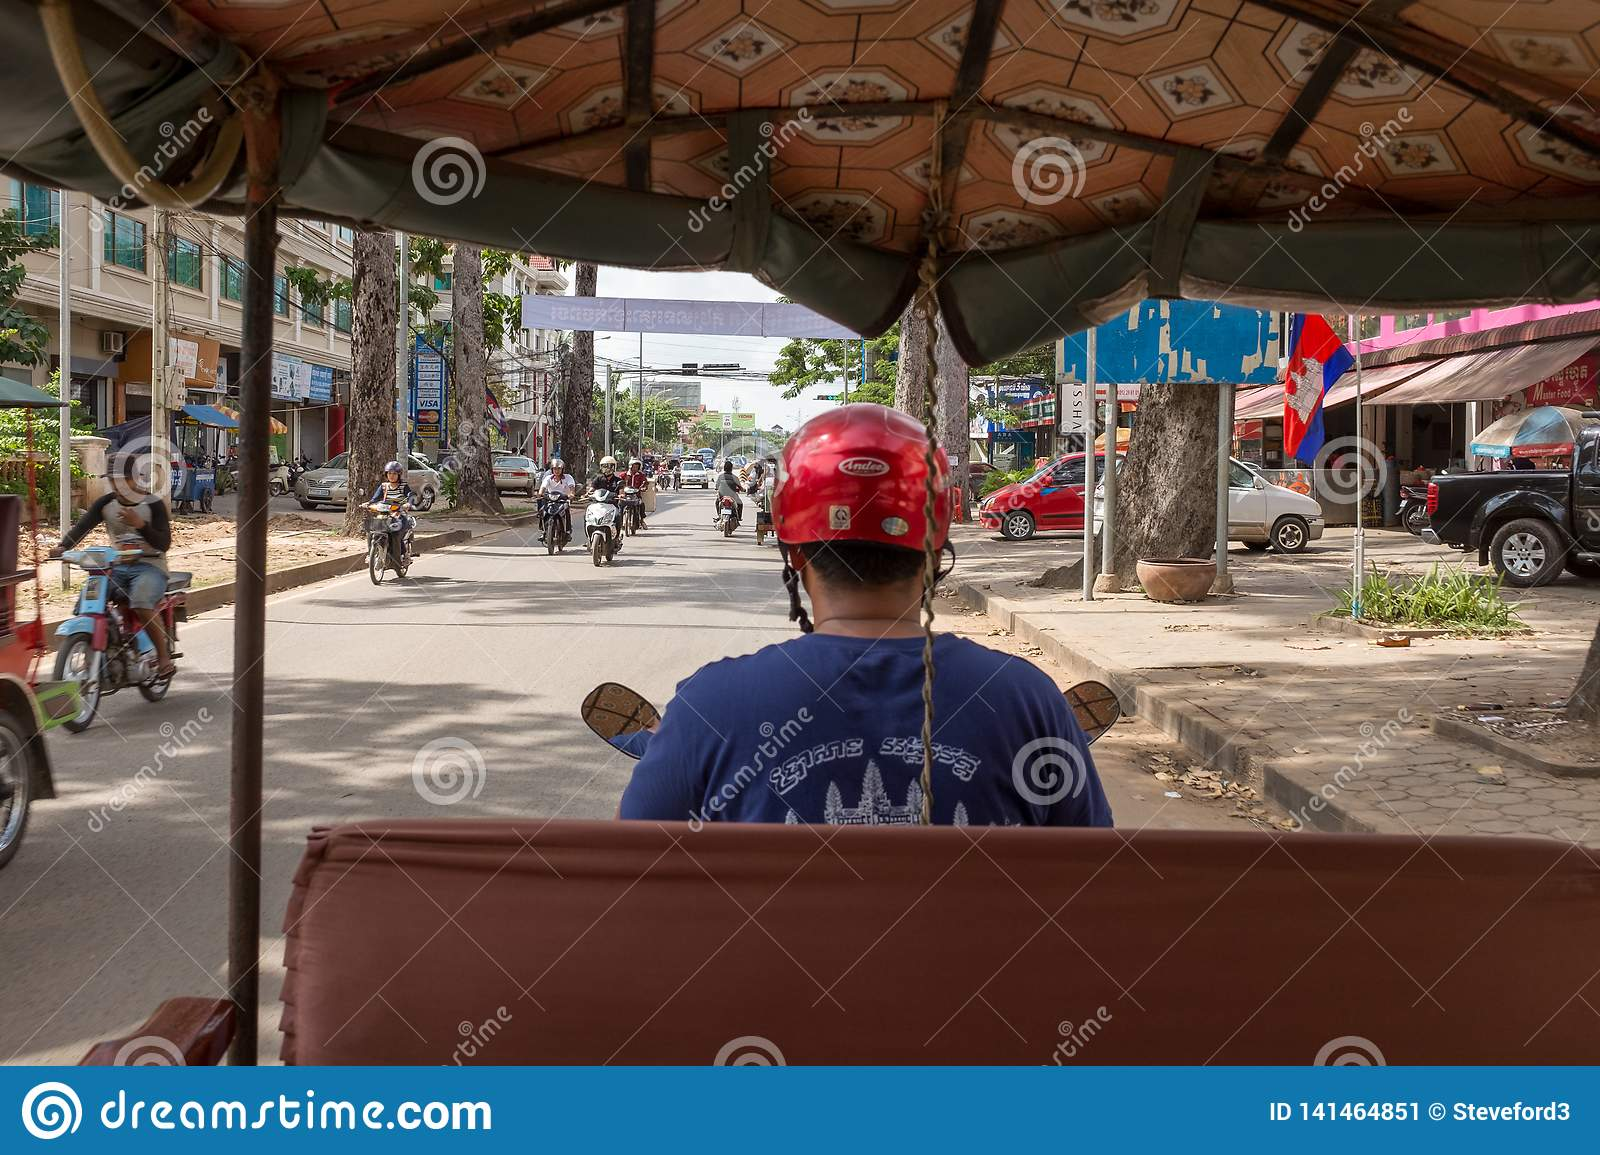 The view from the back of tuk tuk as it weaves through the busy streets of Siem Reap, Cambodia